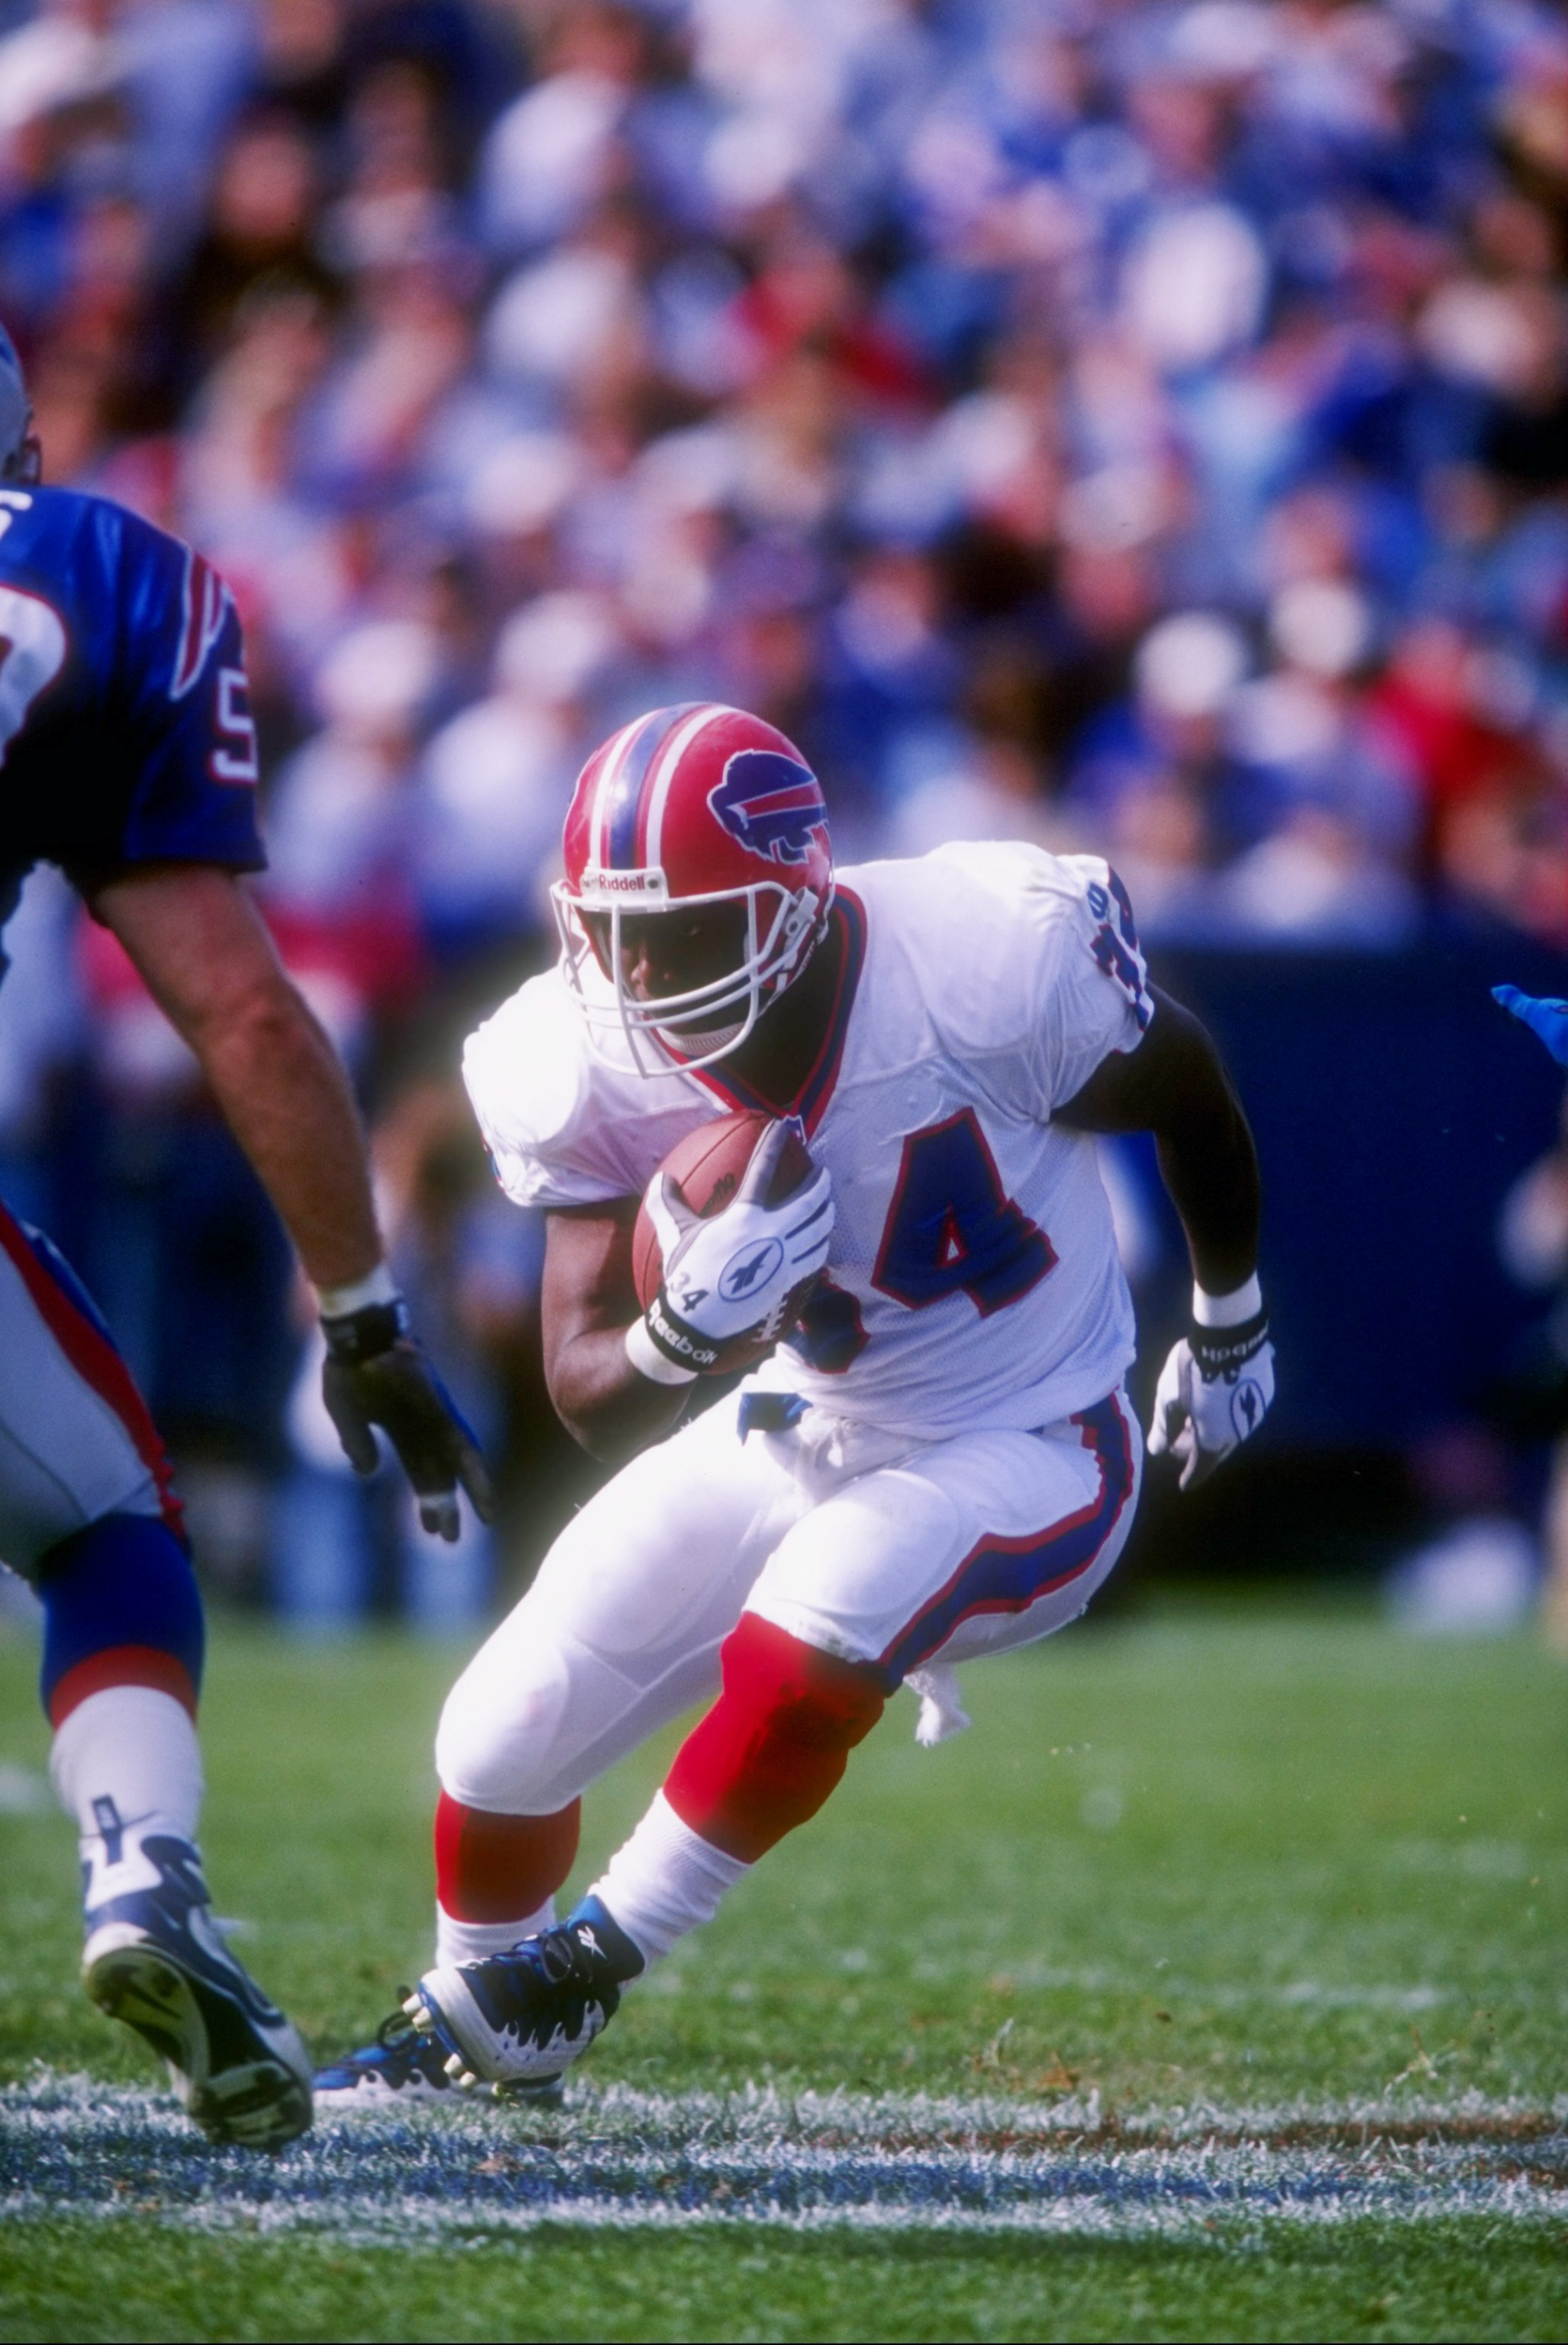 12 Oct 1997: Running back Thurman Thomas of the Buffalo Bills runs with the ball during a game against the New England Patriots at Foxboro Stadium in Foxboro, Massachusetts. The Patriots won the game 33-6.